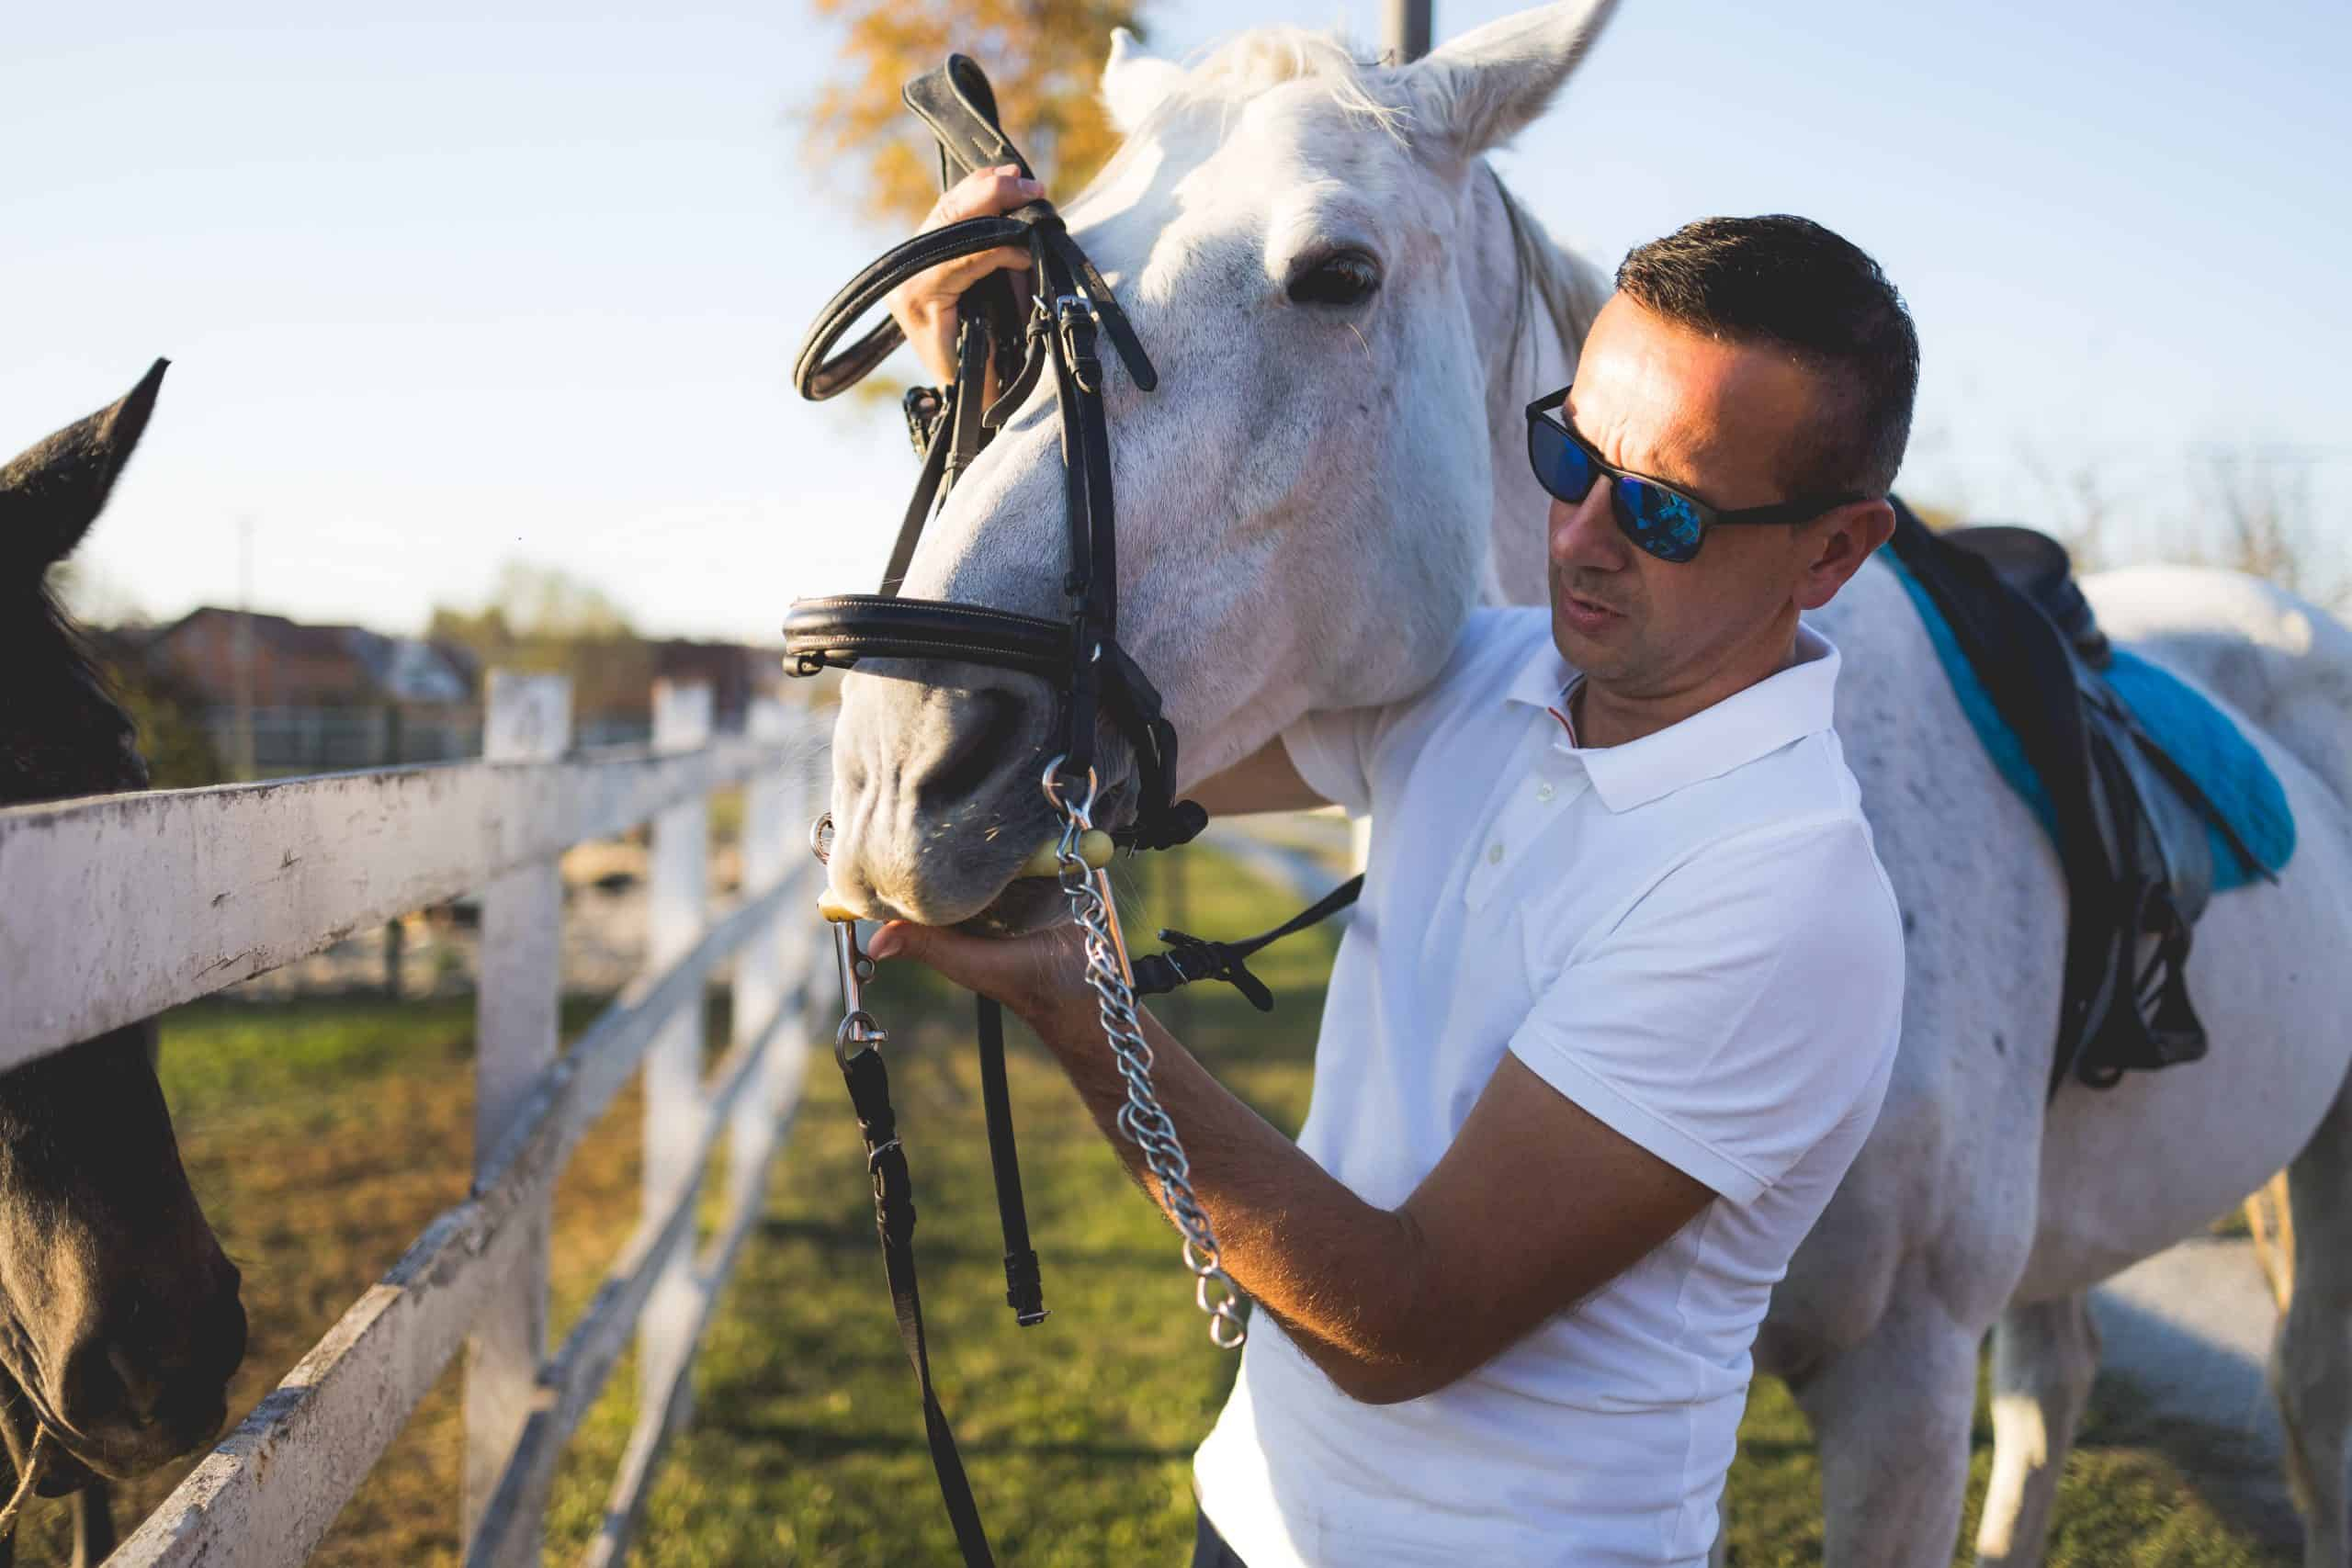 The owner and his white horse are preparing to ride